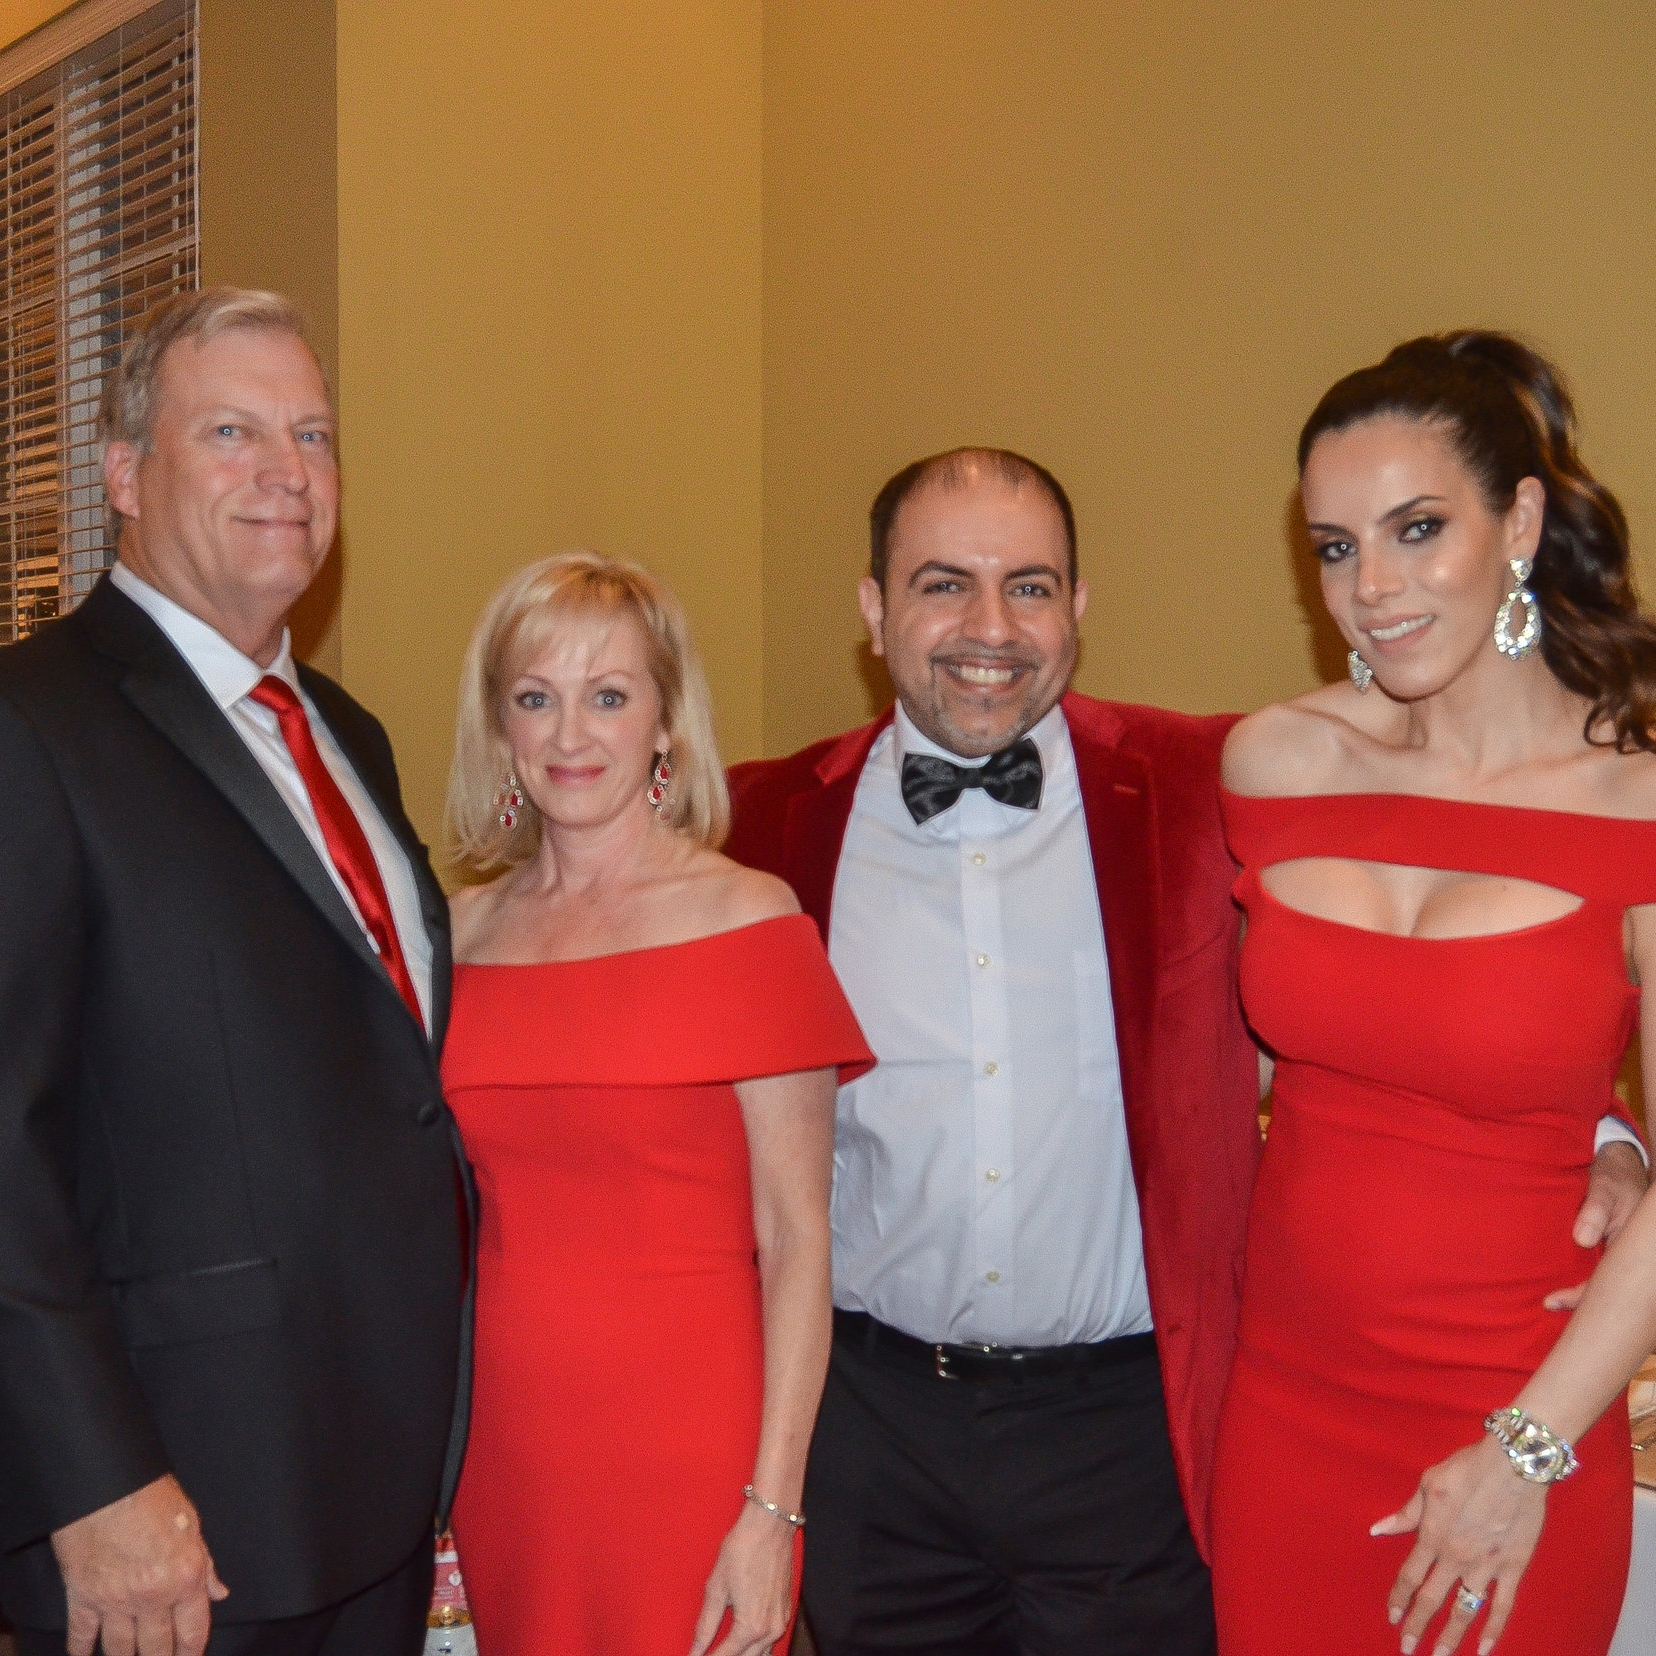 John and Doni Phillips with Dr. Hesham and Layla Hazin